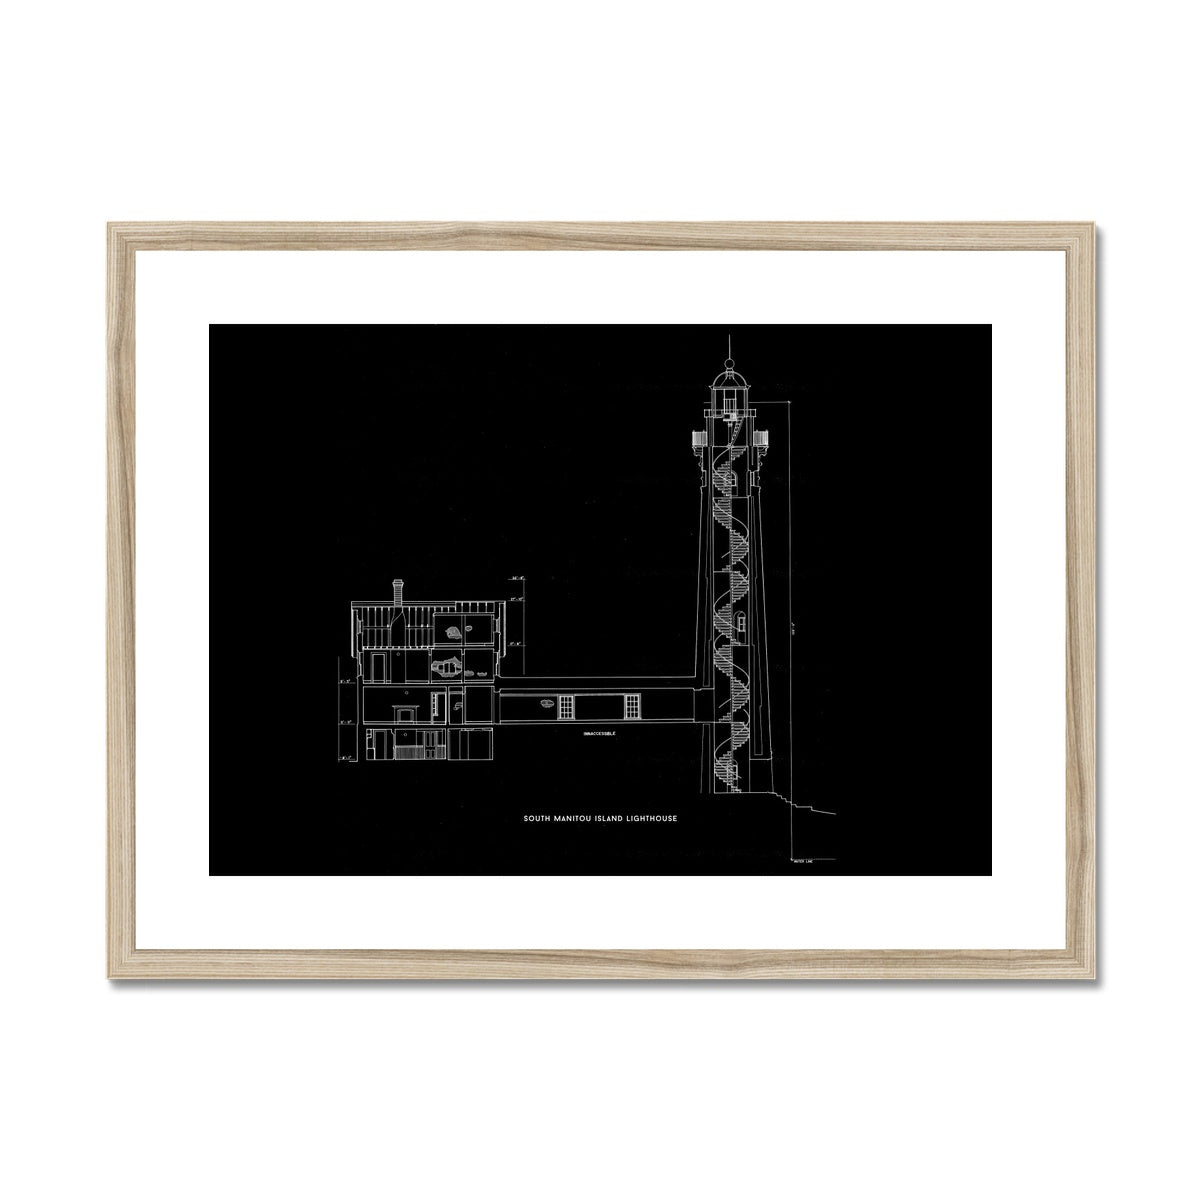 South Manitou Island Lighthouse - Cross Section - Black -  Framed & Mounted Print